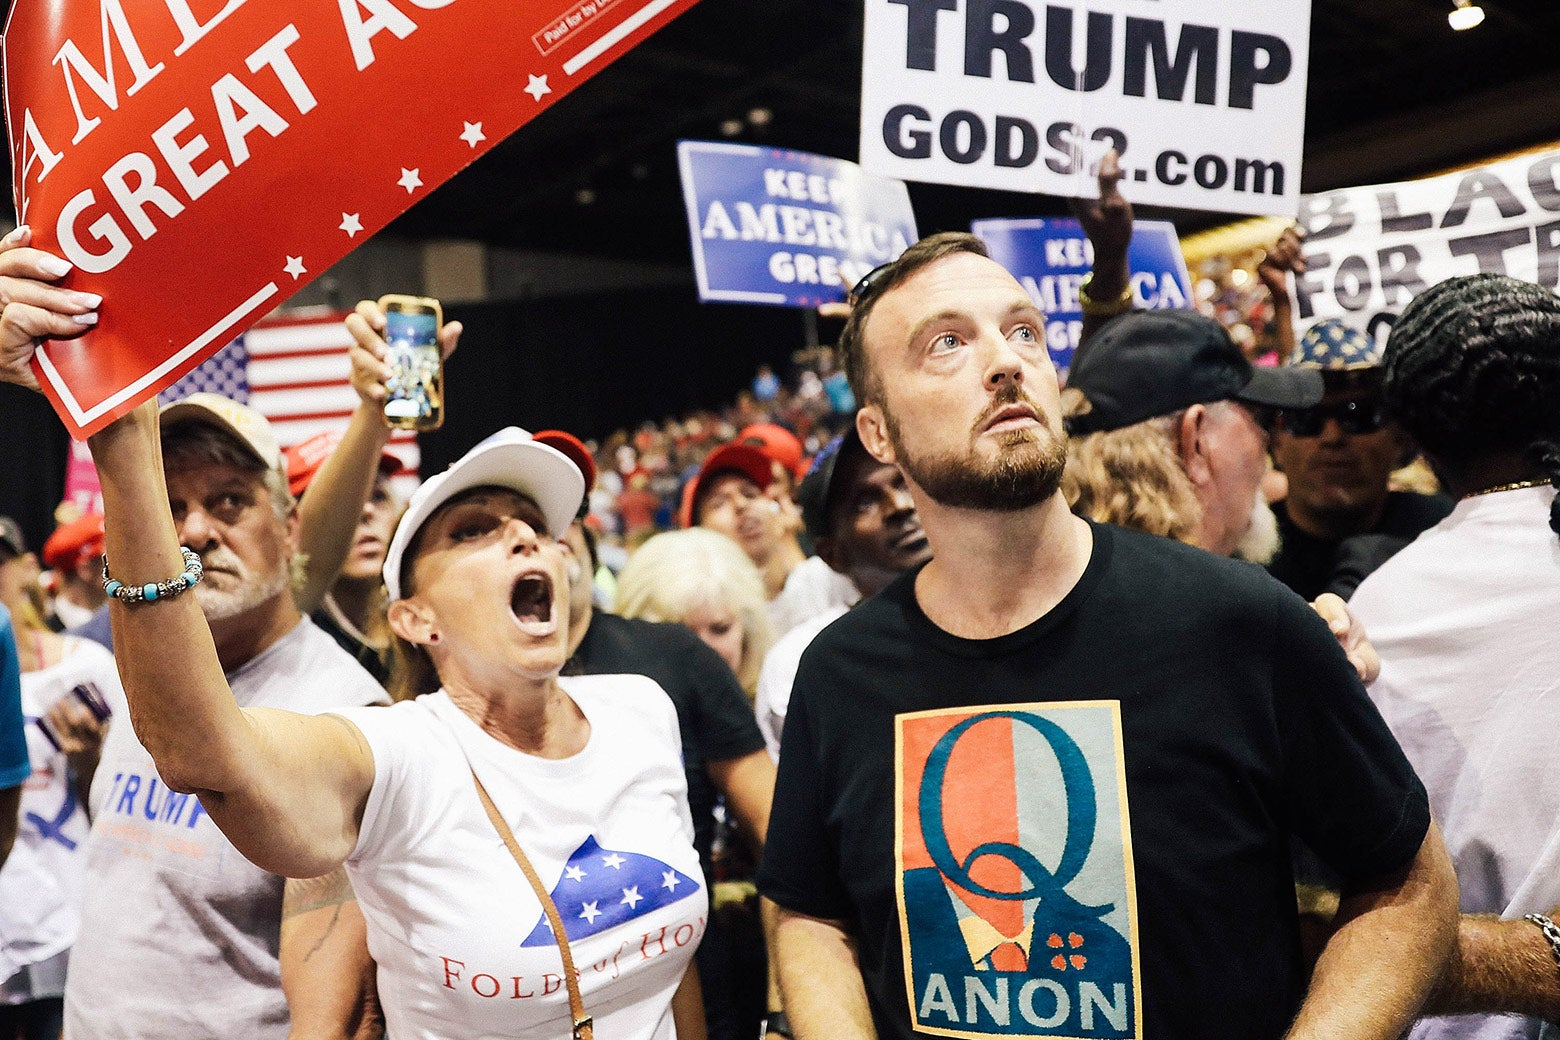 A man wearing a QAnon T-shirt stands amid the crowd at a Trump rally.